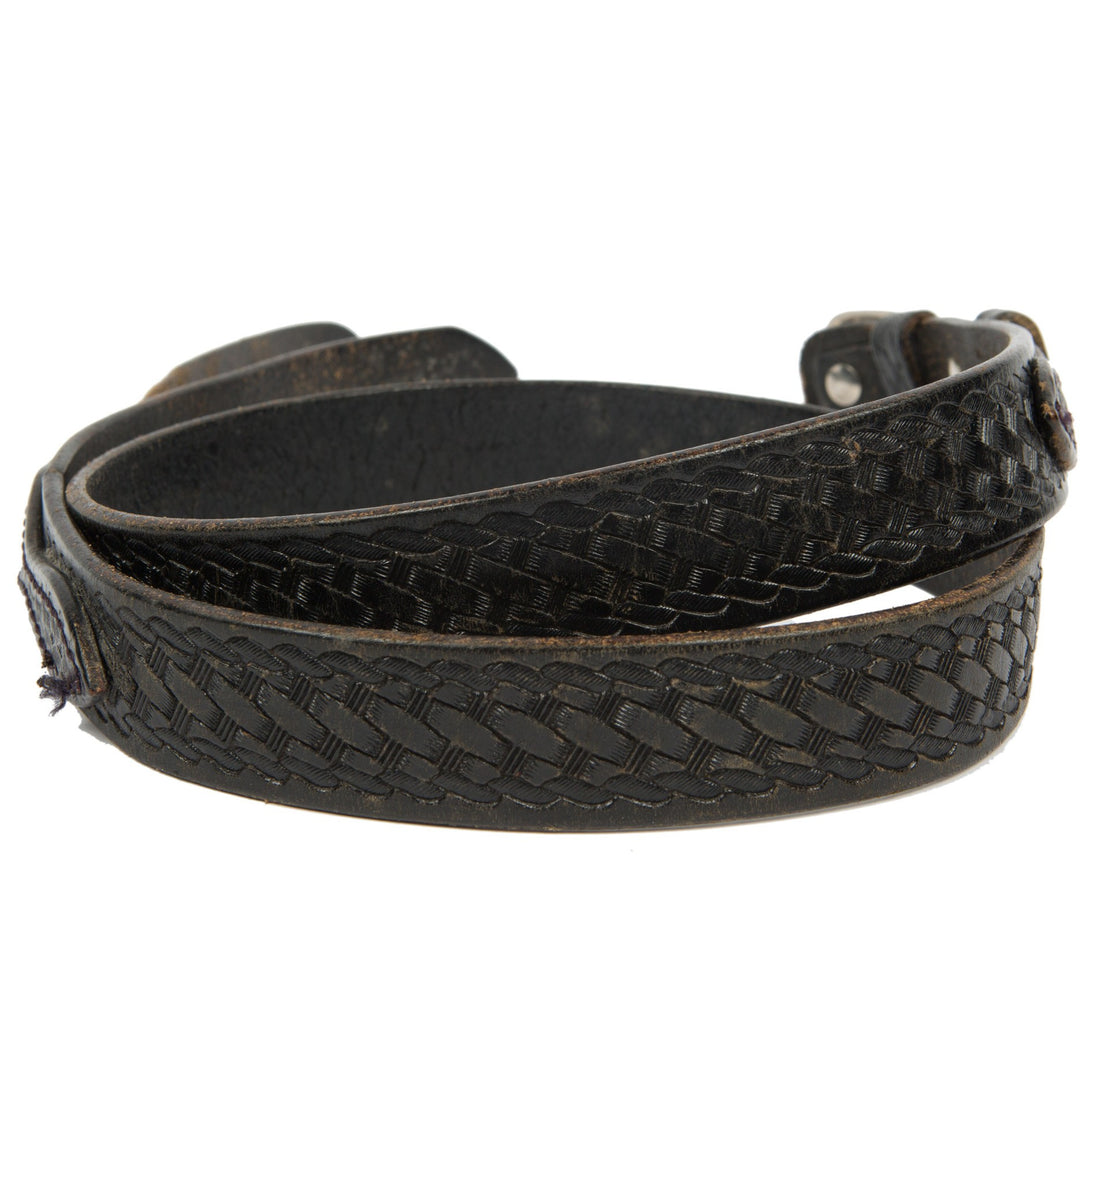 Vintage Black Leather Braided Belt, Size 40